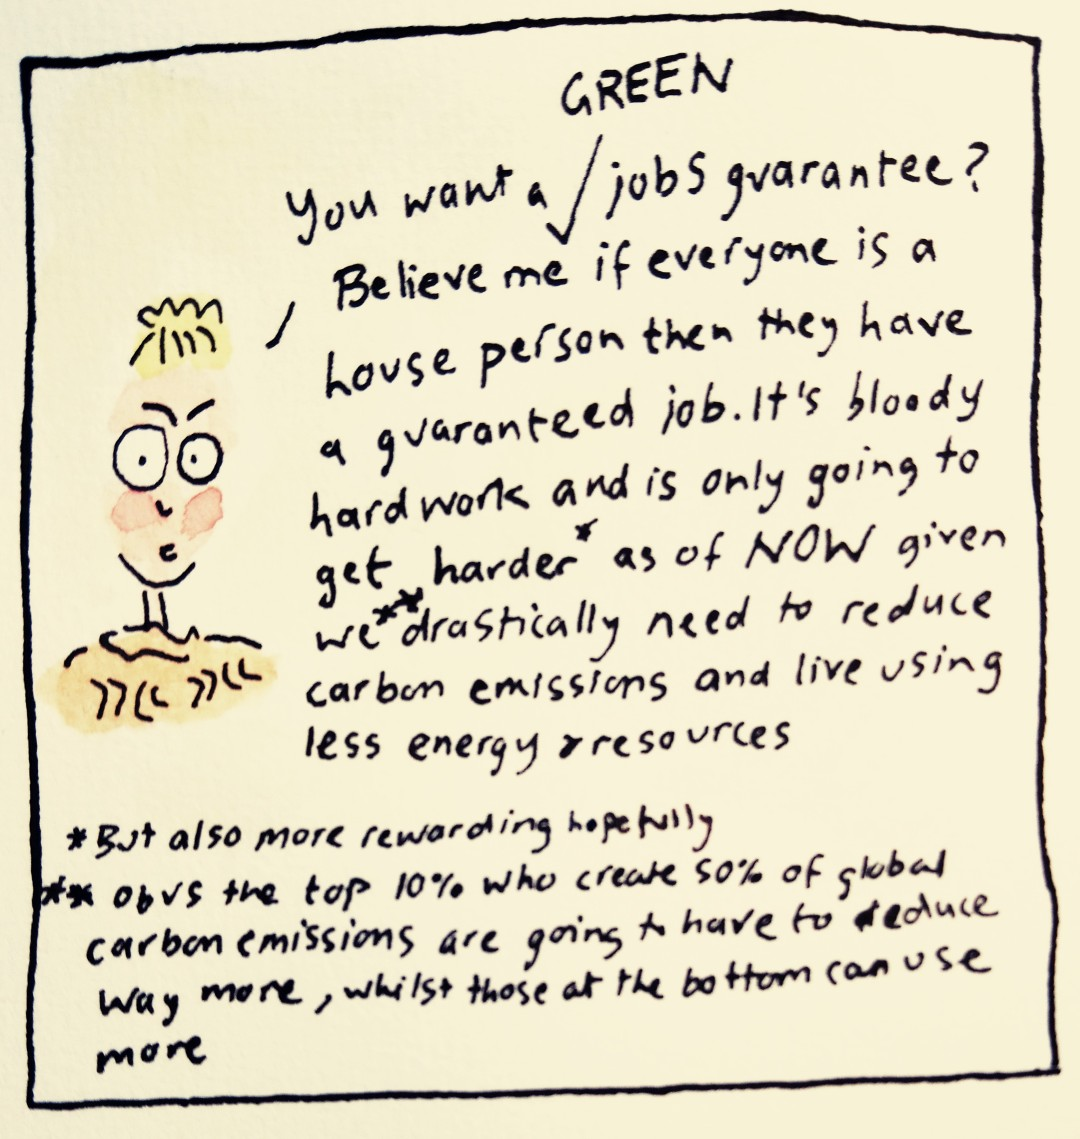 10_Green jobs guarantee